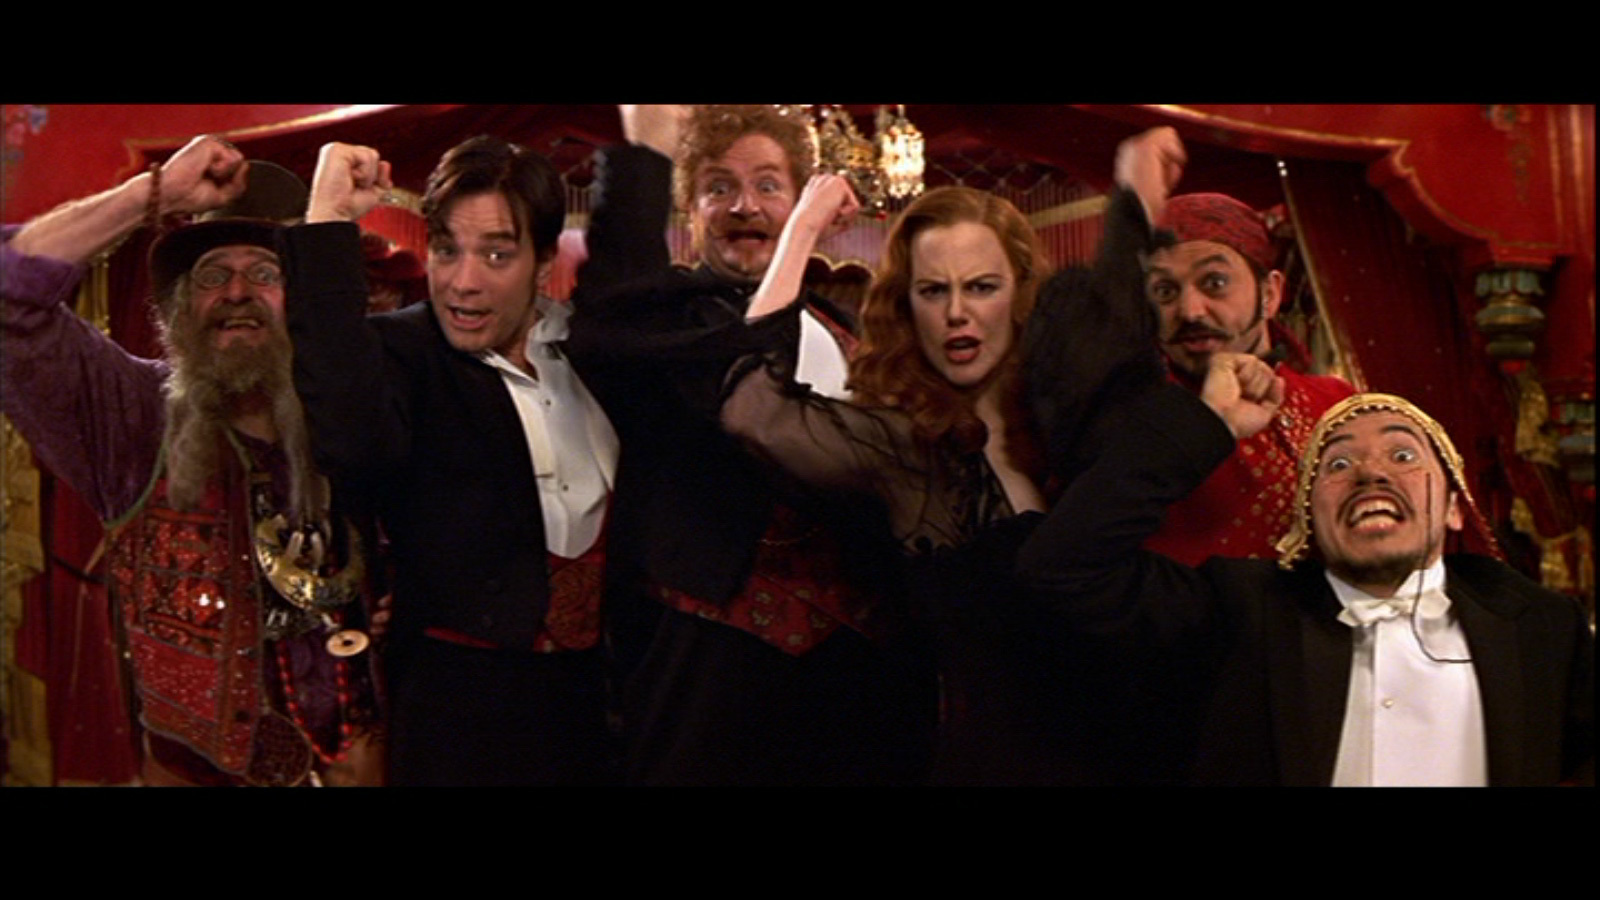 an analysis of the movie moulin rouge An analysis of moulin rouge essay analysis of movie moulin rouge in this essay i will be analyzing in depth four scenes from baz luhrmann's critically.